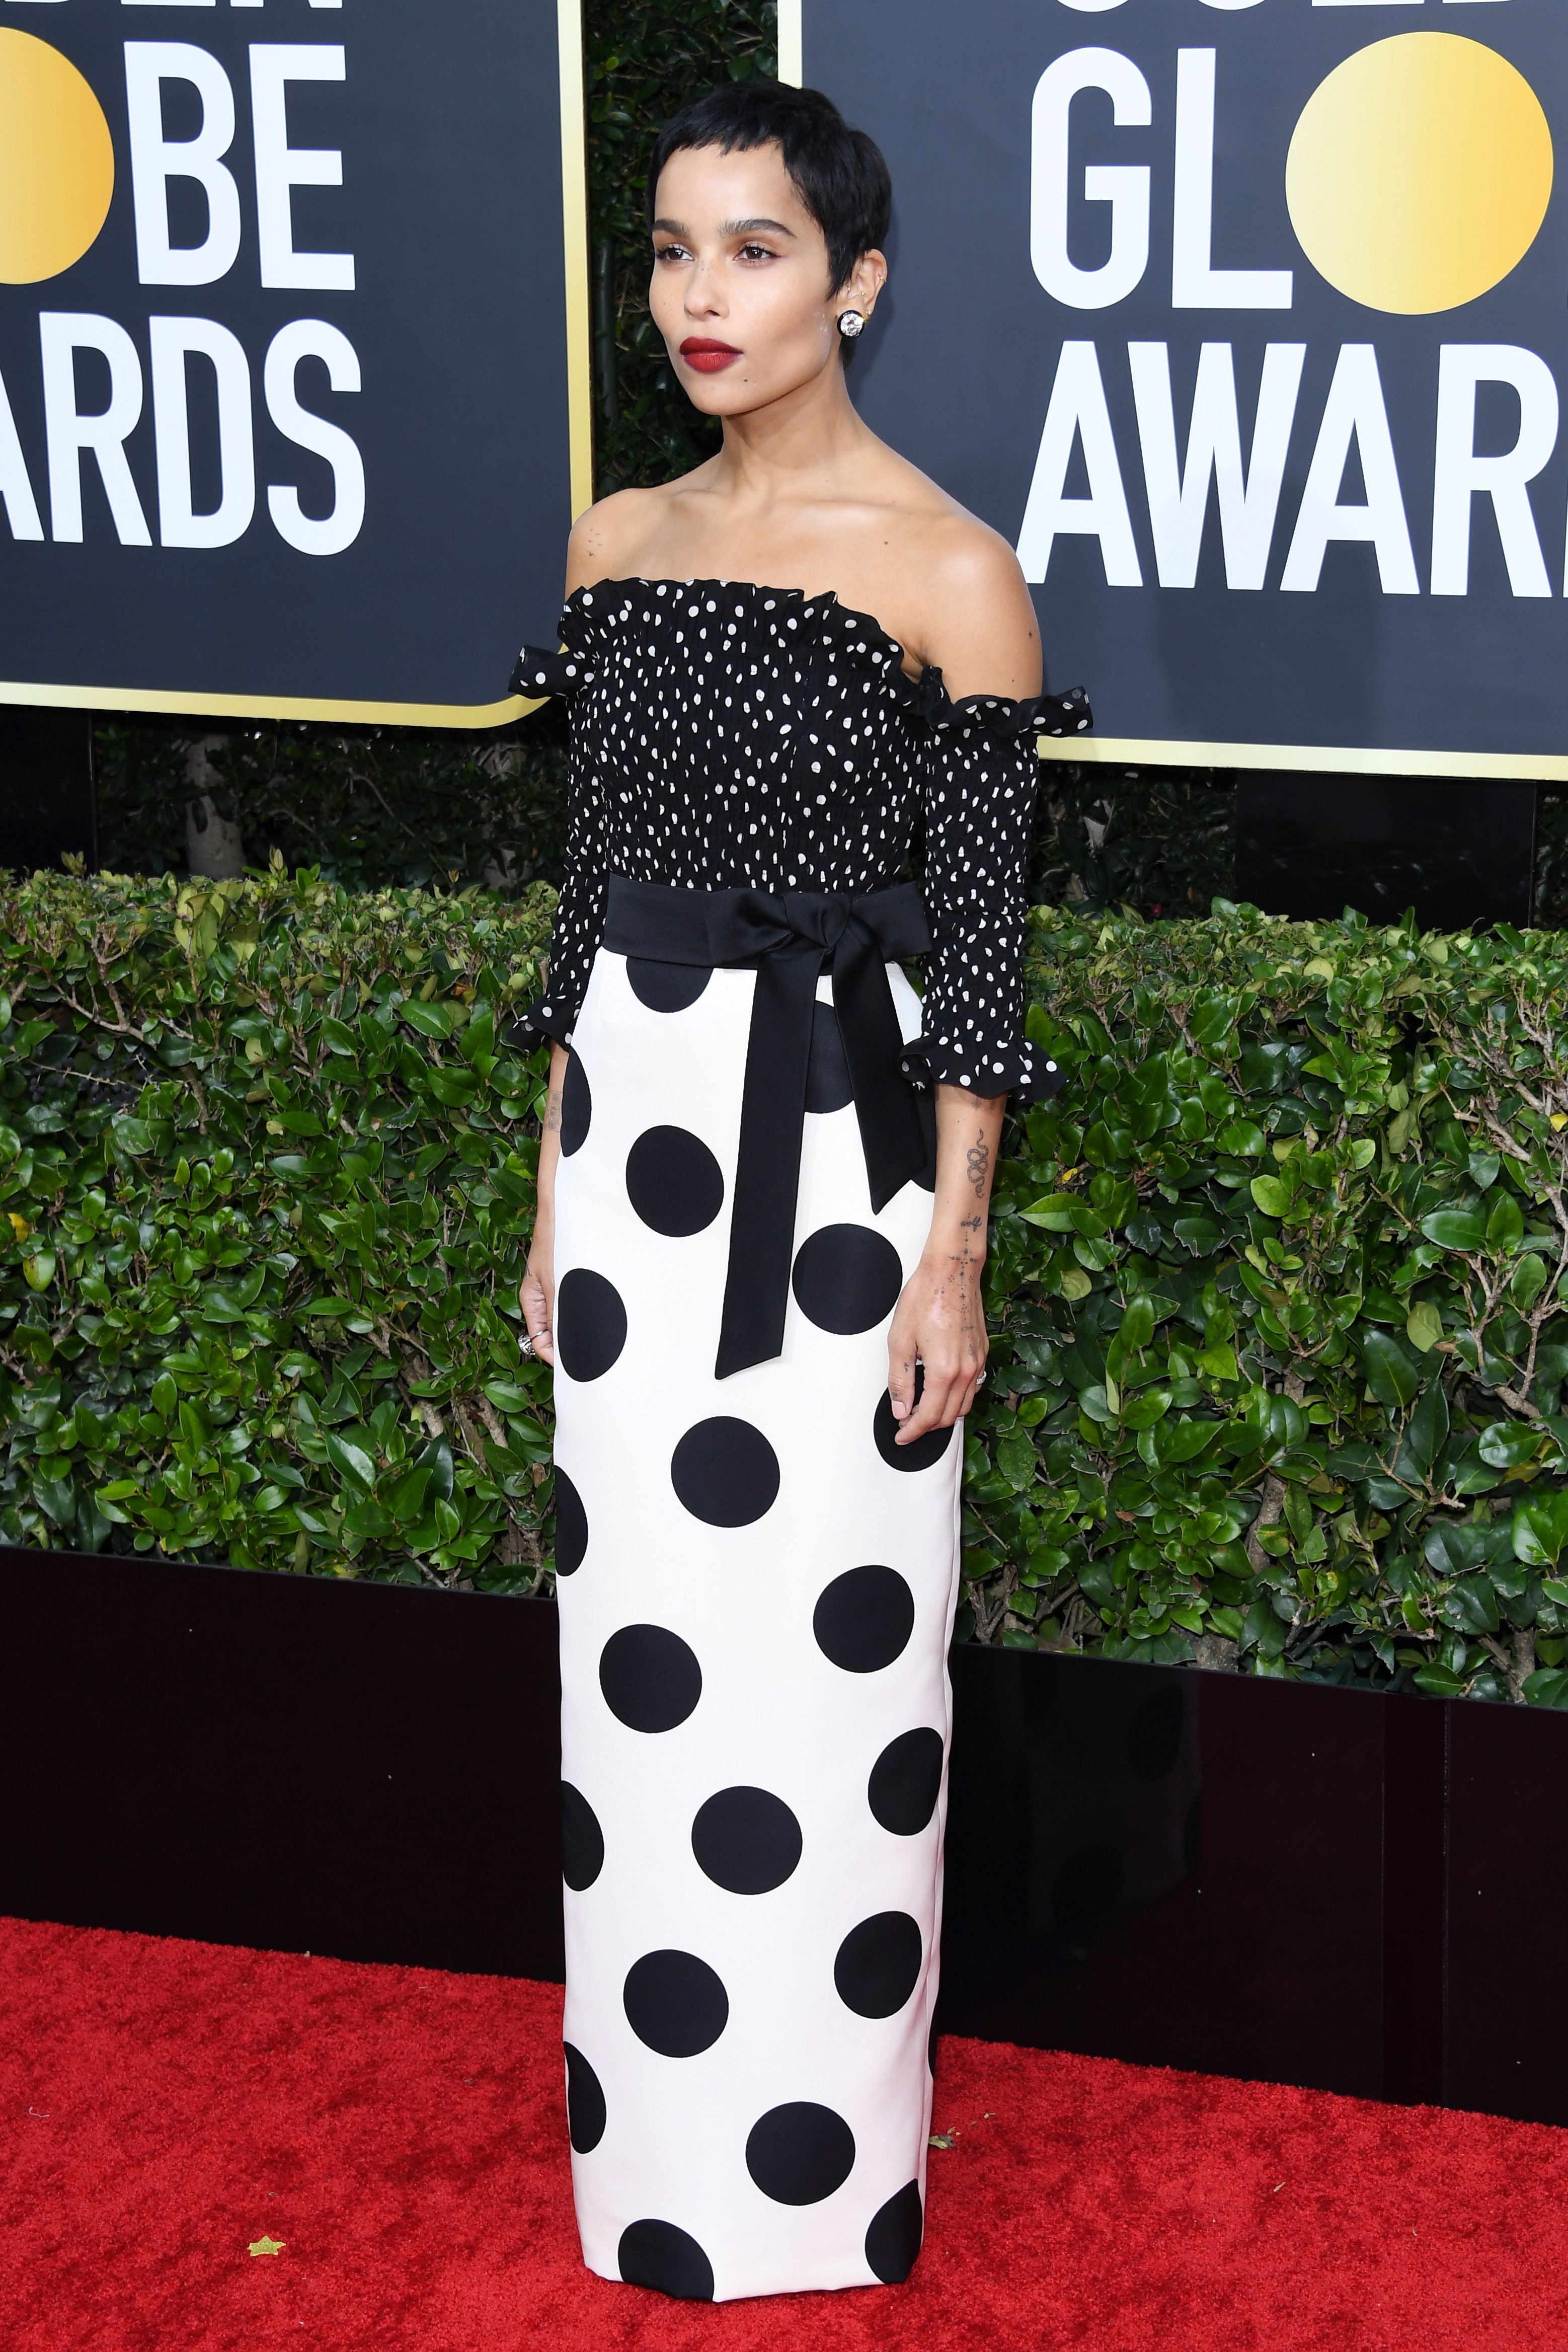 Zoë Kravitz Wore the Perfect Red Lip to the Golden Globes and Her Makeup Artist Shared the Details